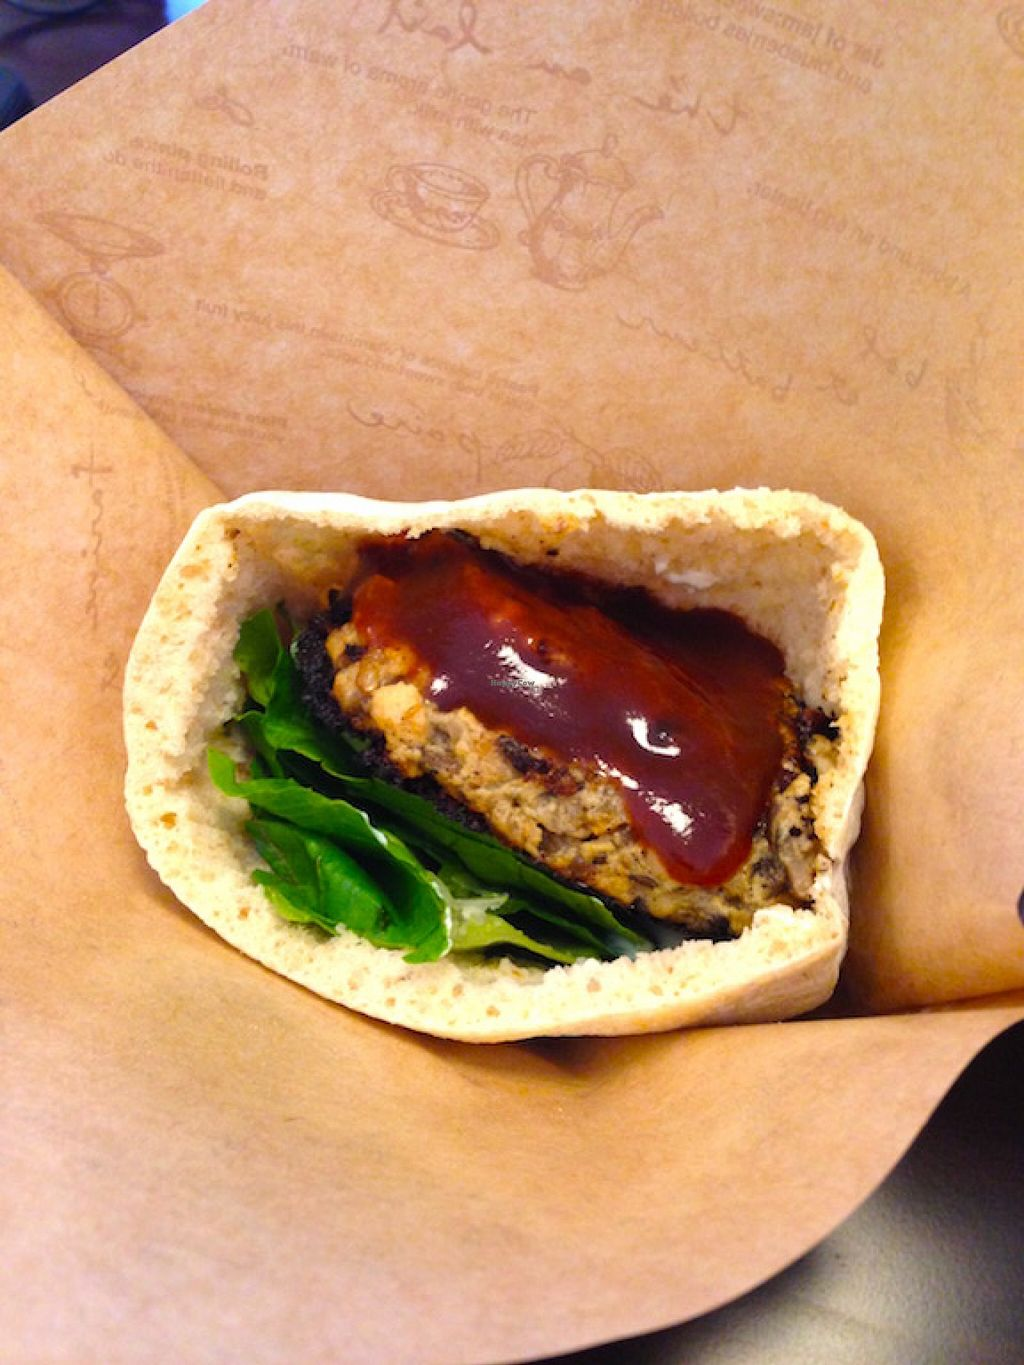 "Photo of Veggie Cafe  by <a href=""/members/profile/jeedeecee"">jeedeecee</a> <br/>Close up of the burger with an excellent miso paste.  <br/> August 29, 2015  - <a href='/contact/abuse/image/40954/115606'>Report</a>"